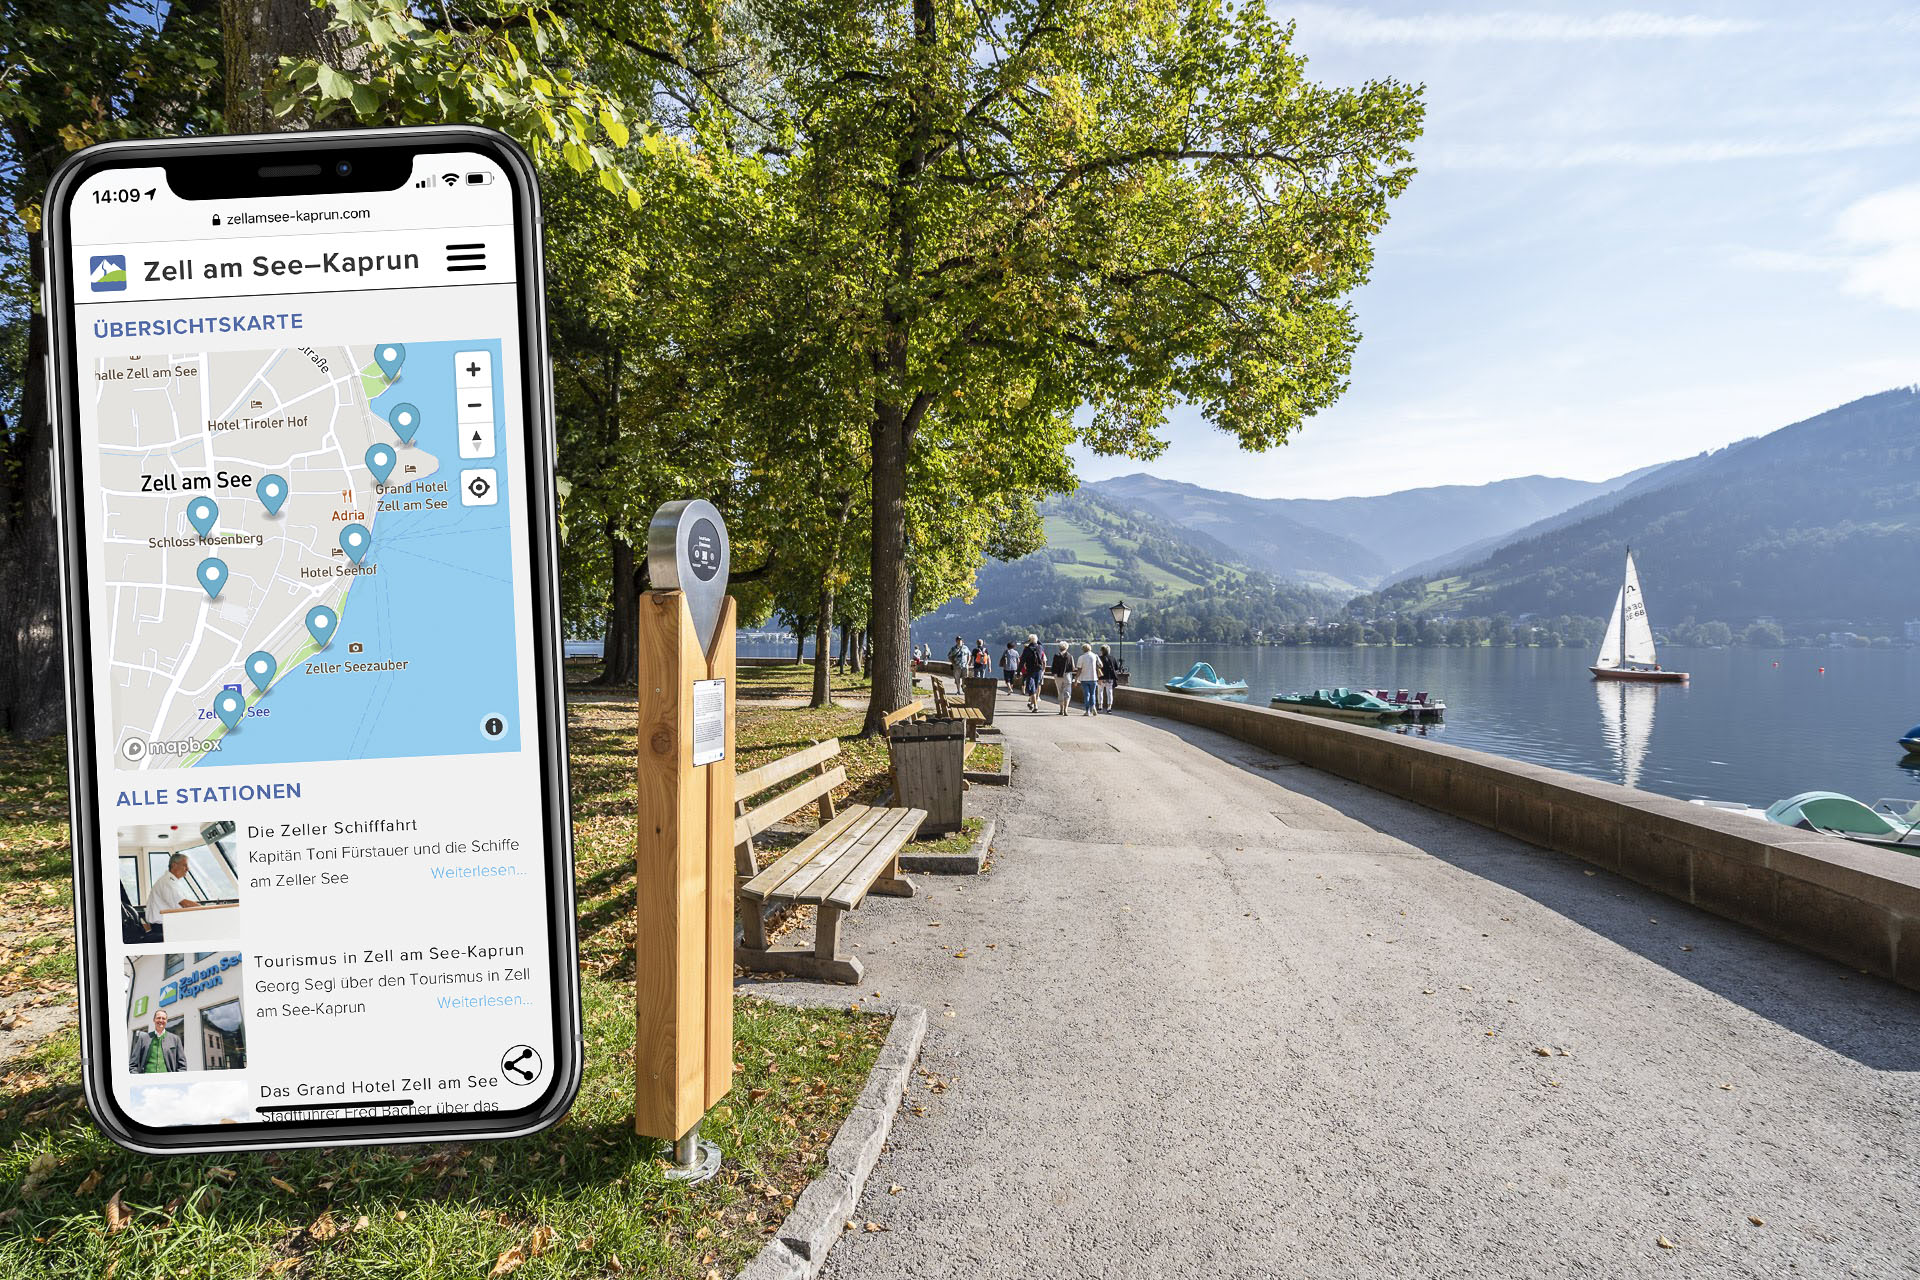 Mobiles Informationssystem in Zell am See-Kaprun